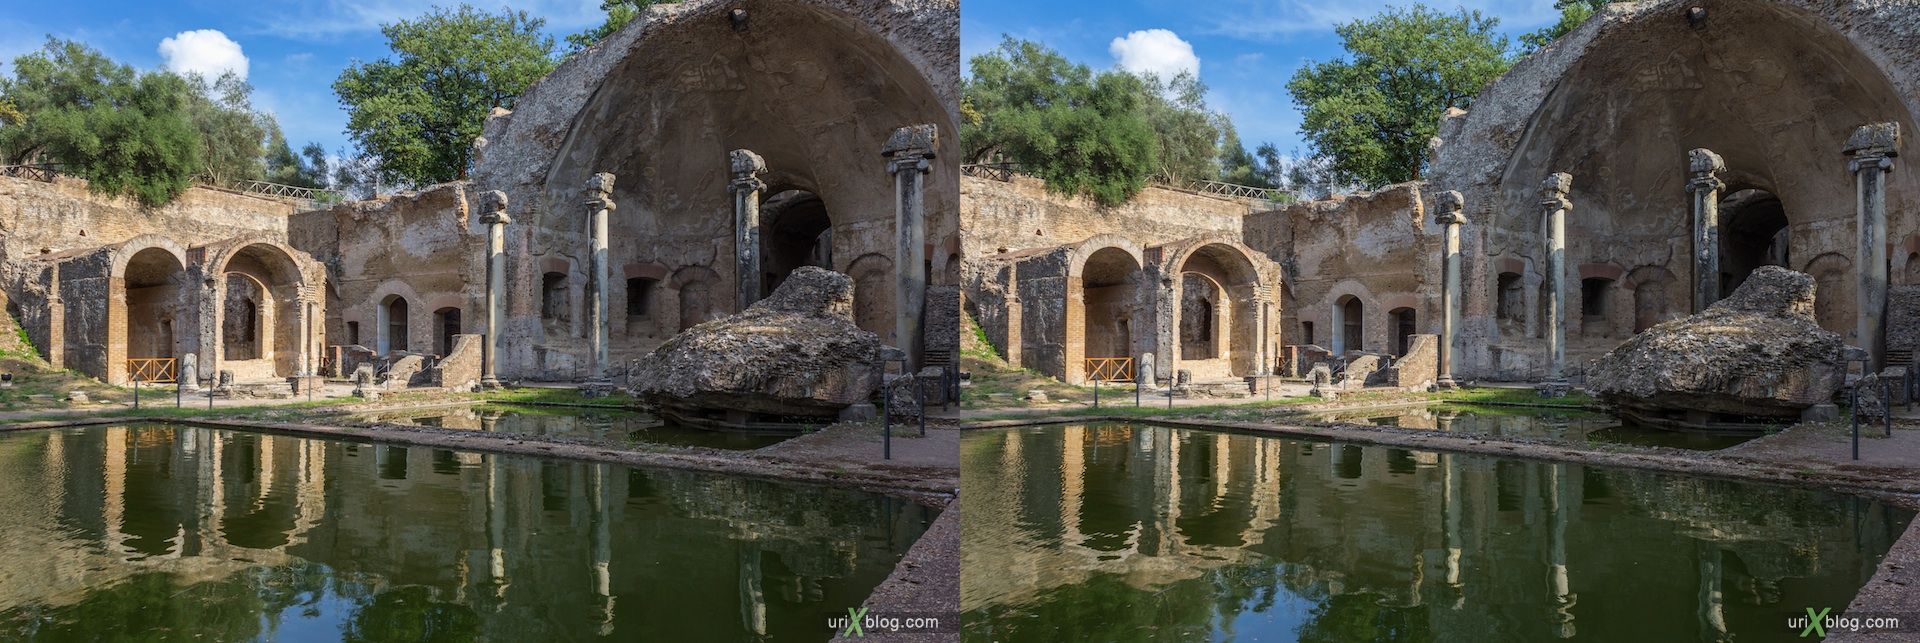 2012, Canopo, Villa Adriana, Italy, Tivoli, Ancient Rome, 3D, stereo pair, cross-eyed, crossview, cross view stereo pair